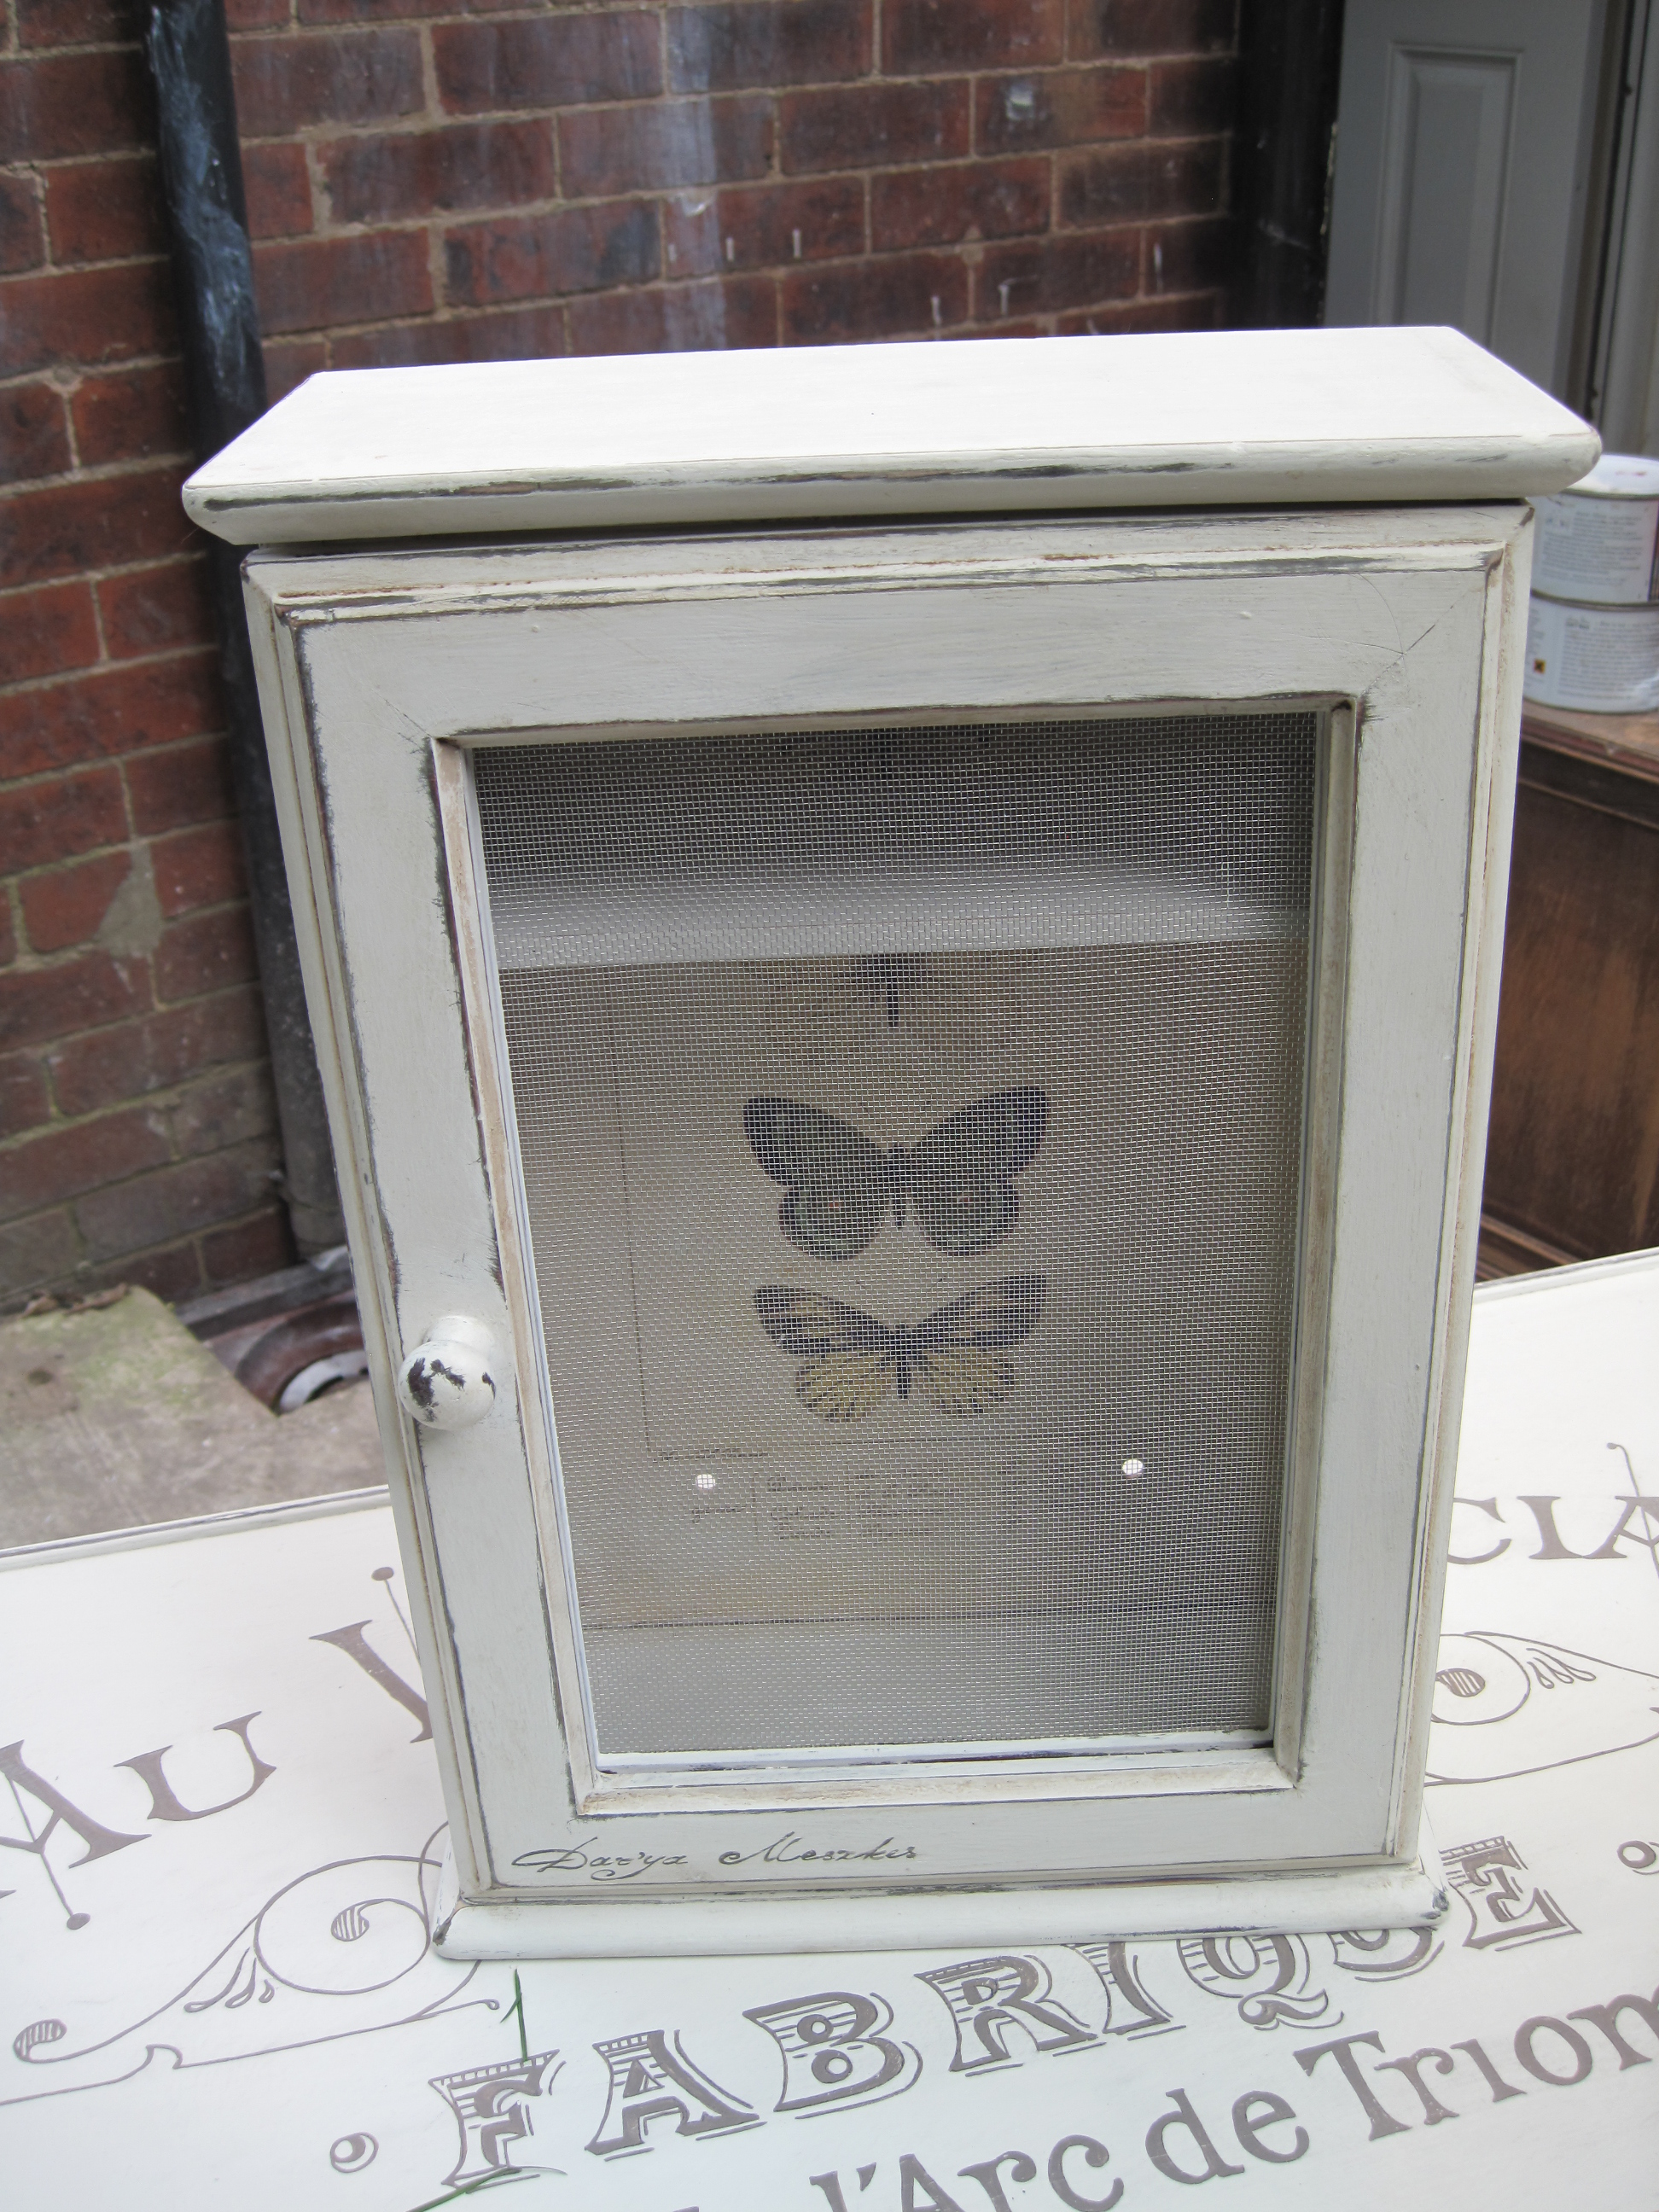 Shabbychiffonier Artfully Recommissioned Furniture Shabby Chic Salvage Lo